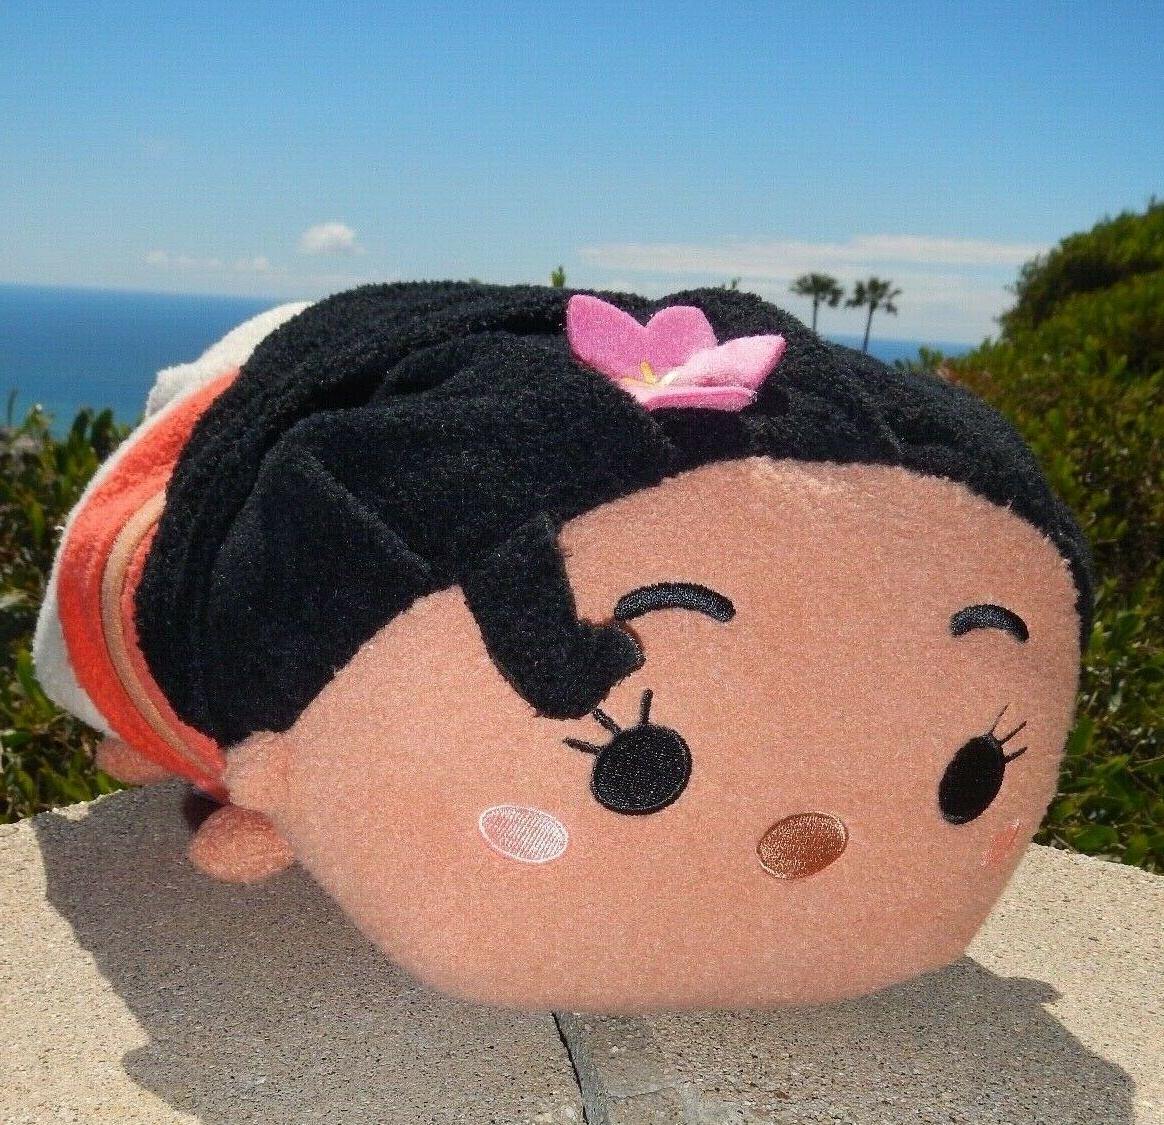 authentic store princess moana tsum tsum medium